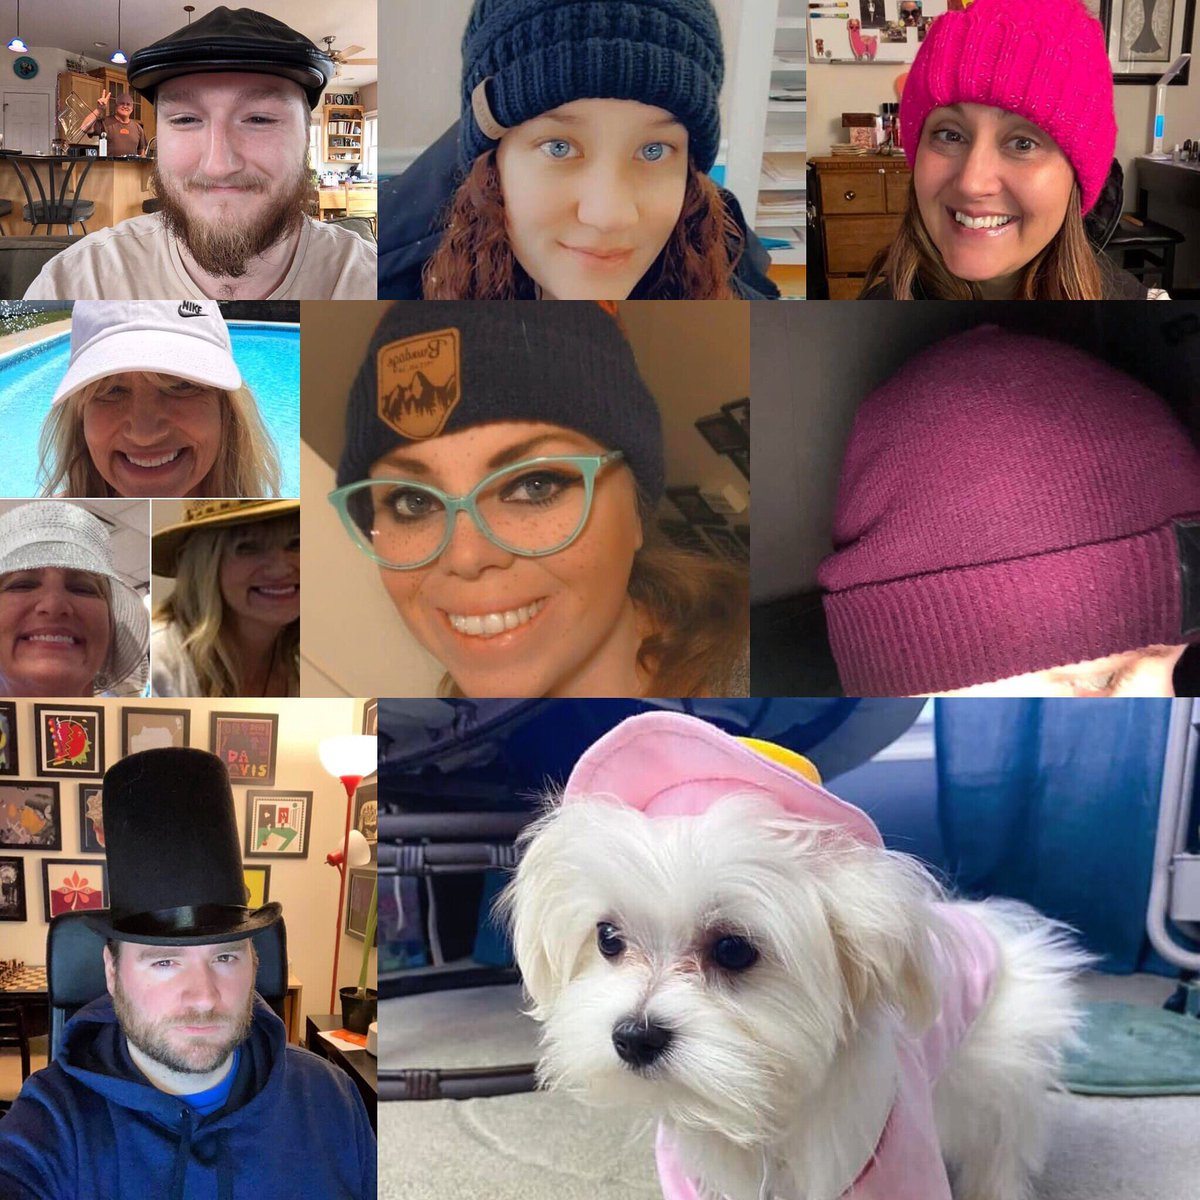 Today #RitterNation sported our favorite hats! What's yours? Tweet us a picture! #NationalHatDay